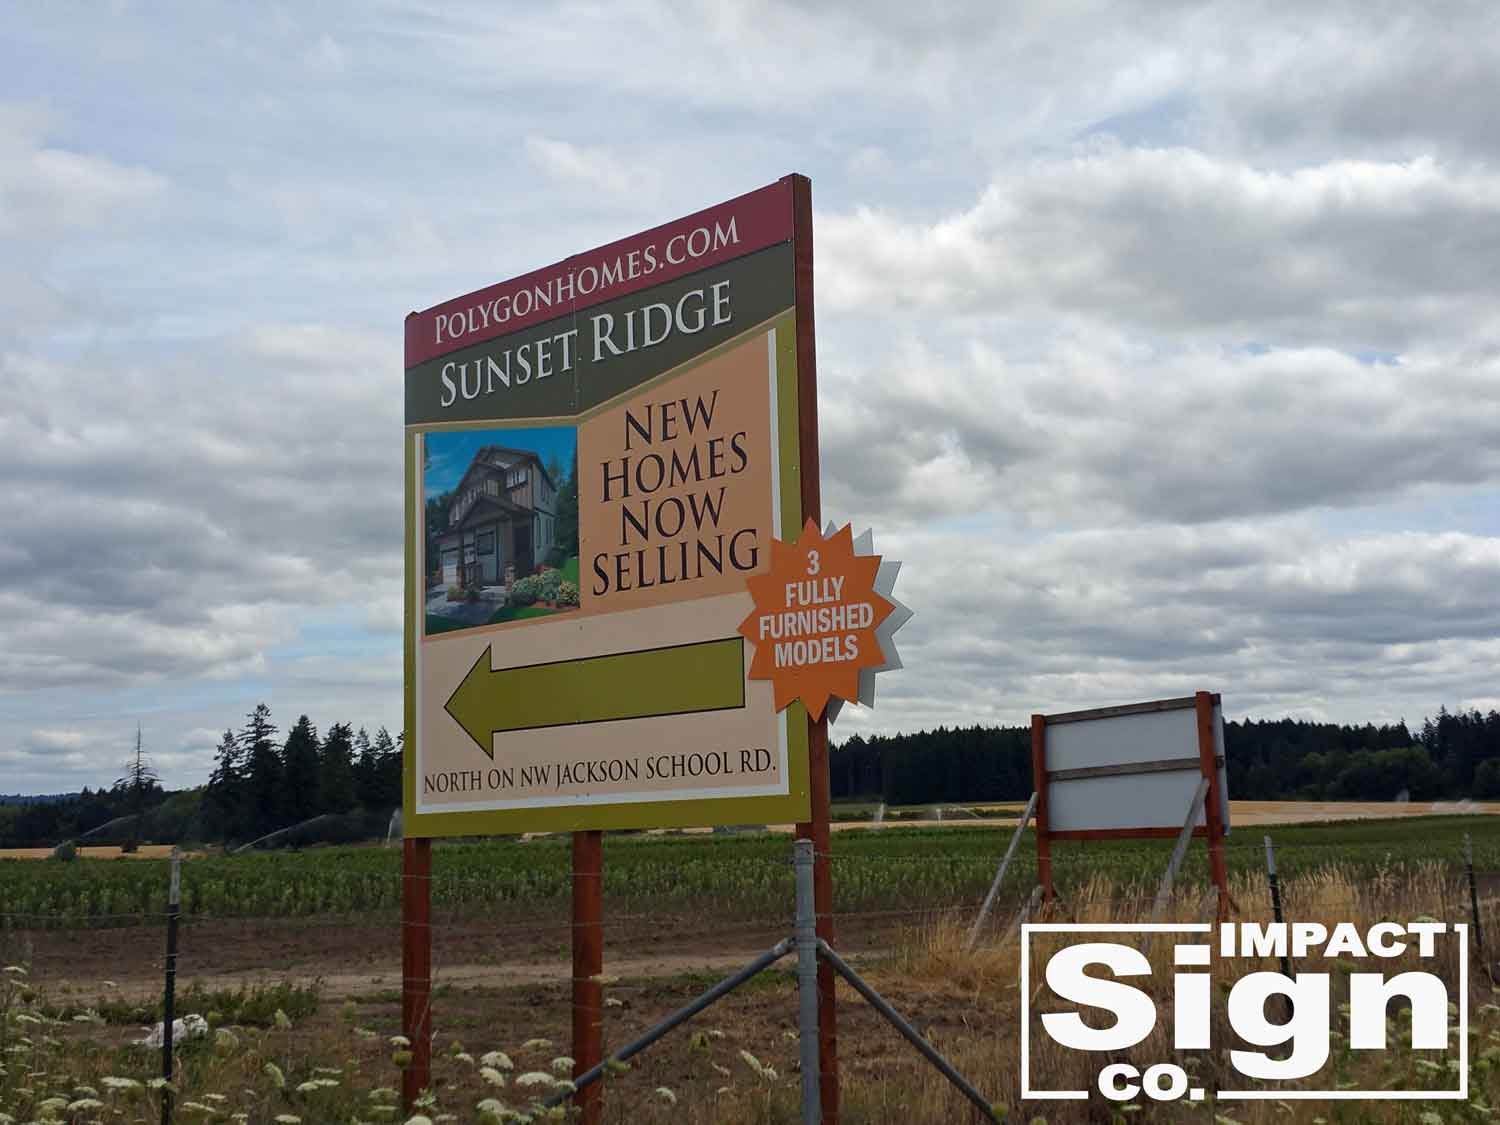 Polygon Sunset Ridge Construction Directional Sign